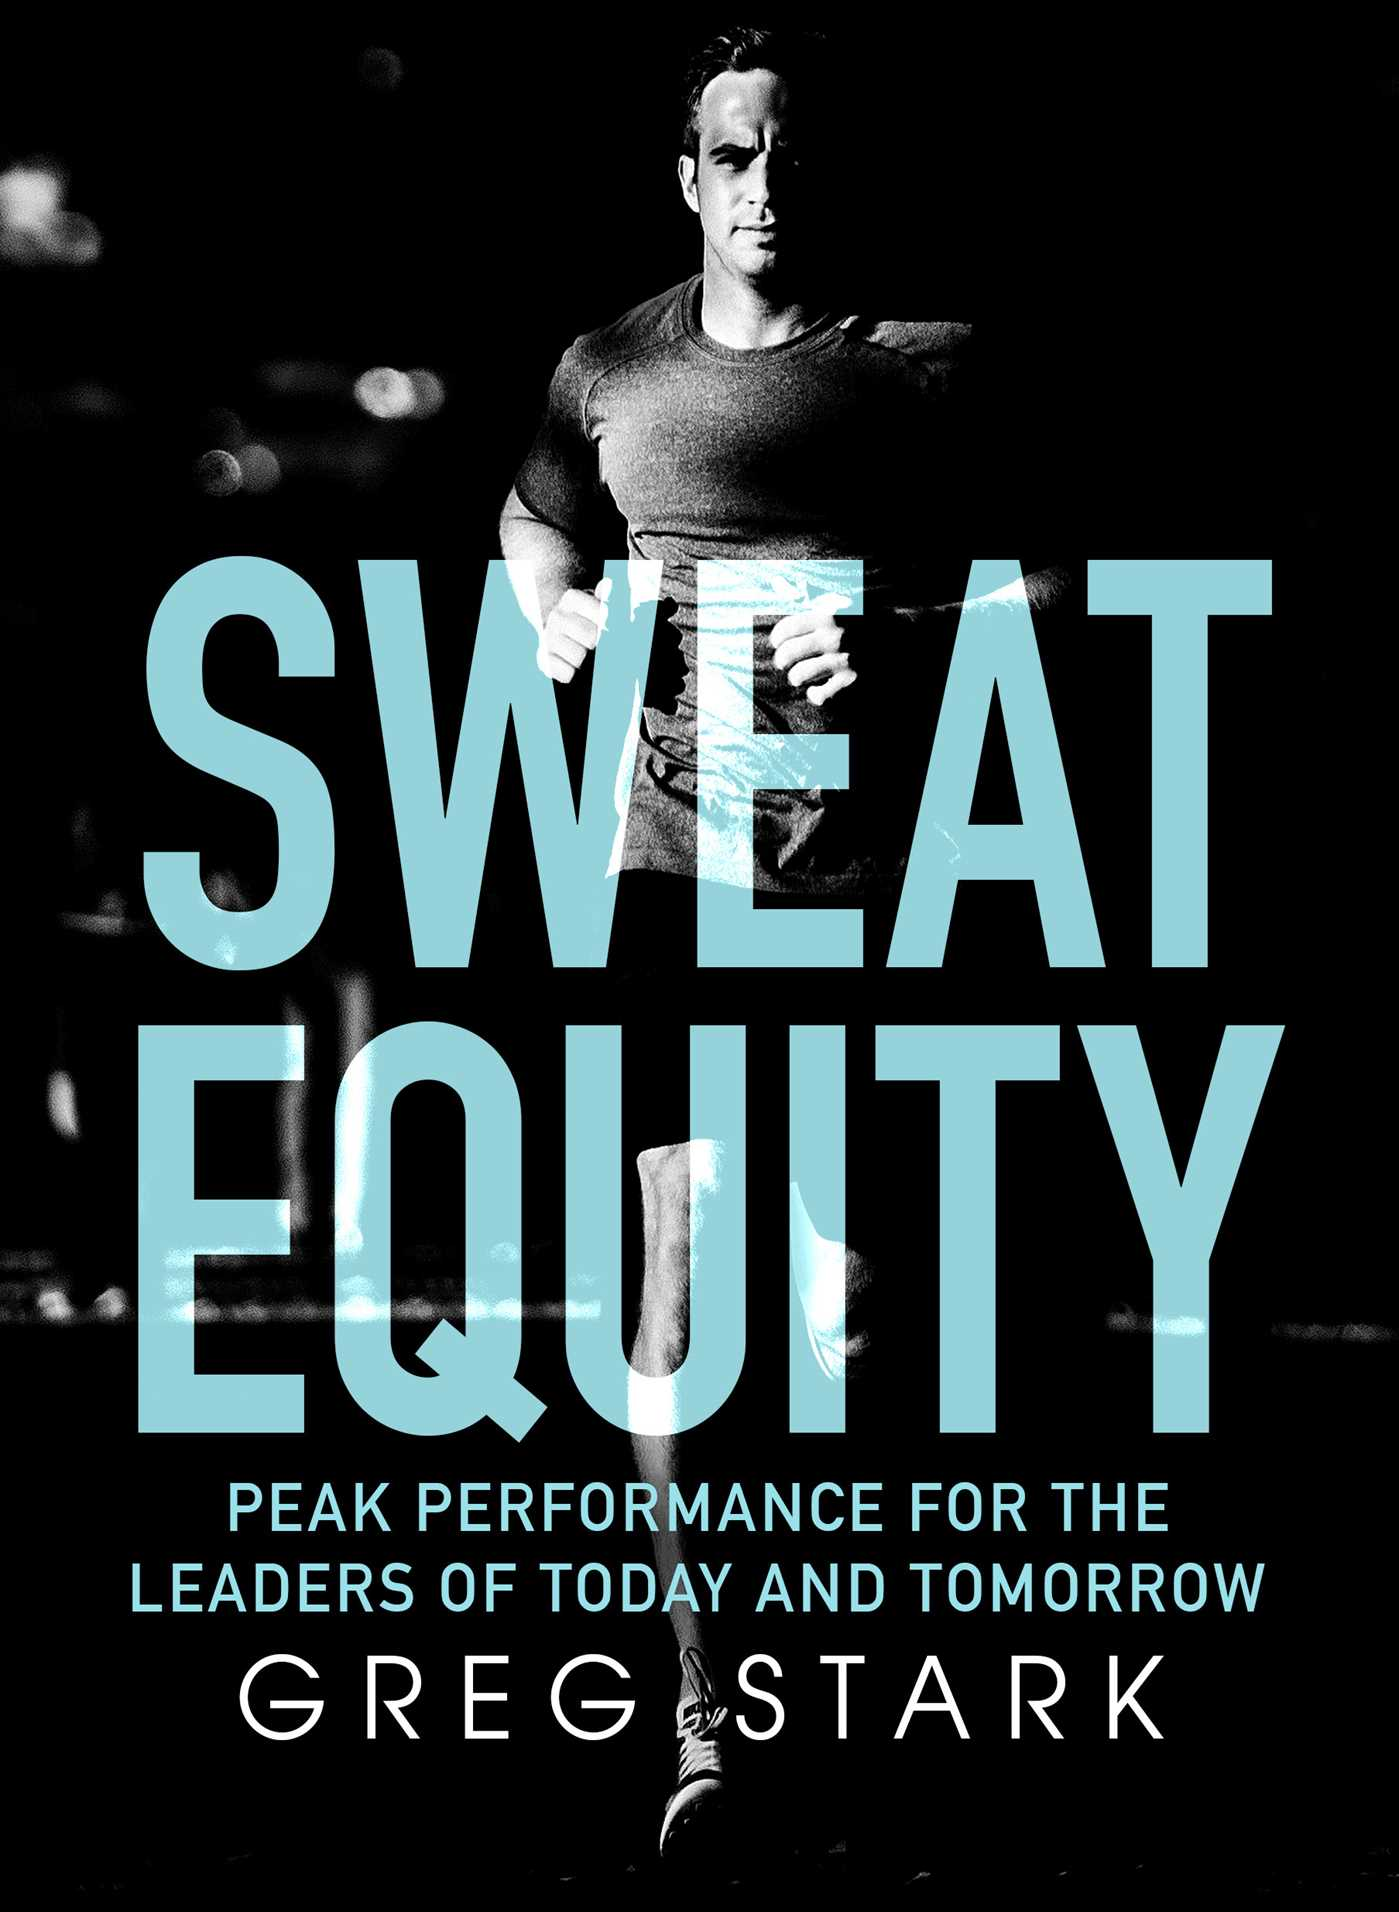 Sweat equity peak performance for the leaders of today and tomorrow 9781925533095 hr